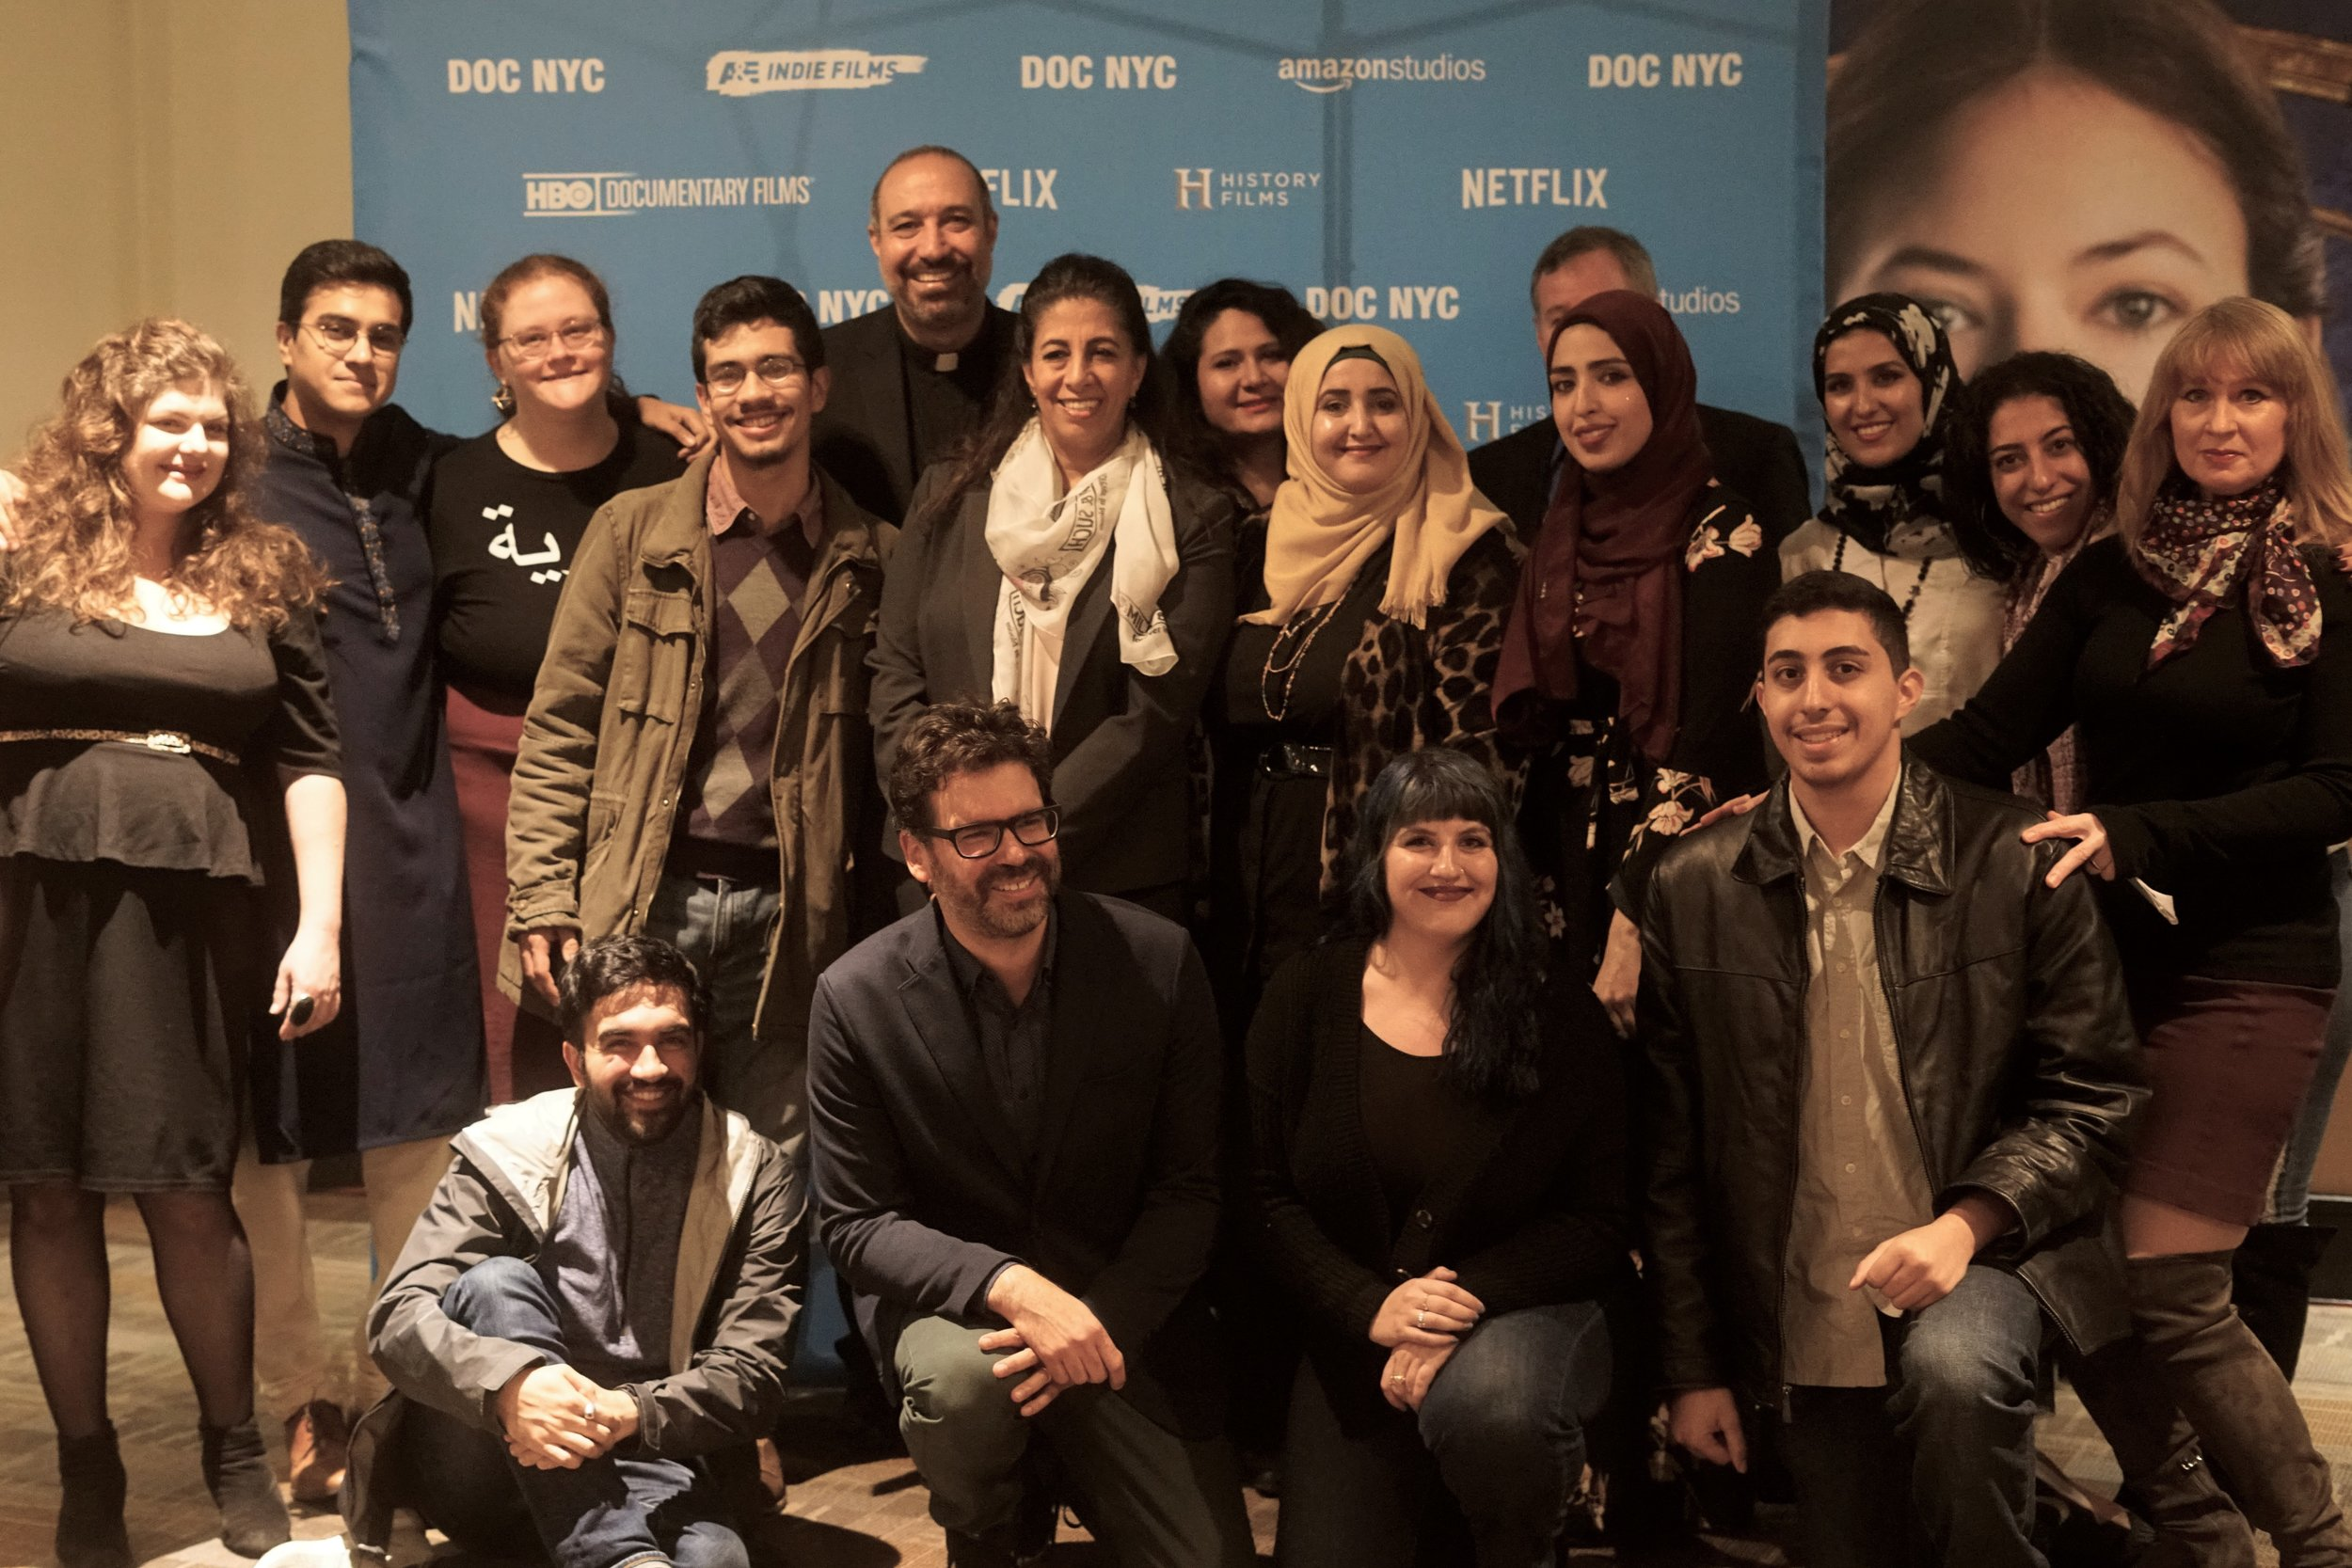 Yalla Brooklyn Premiere DOC NYC.JPG